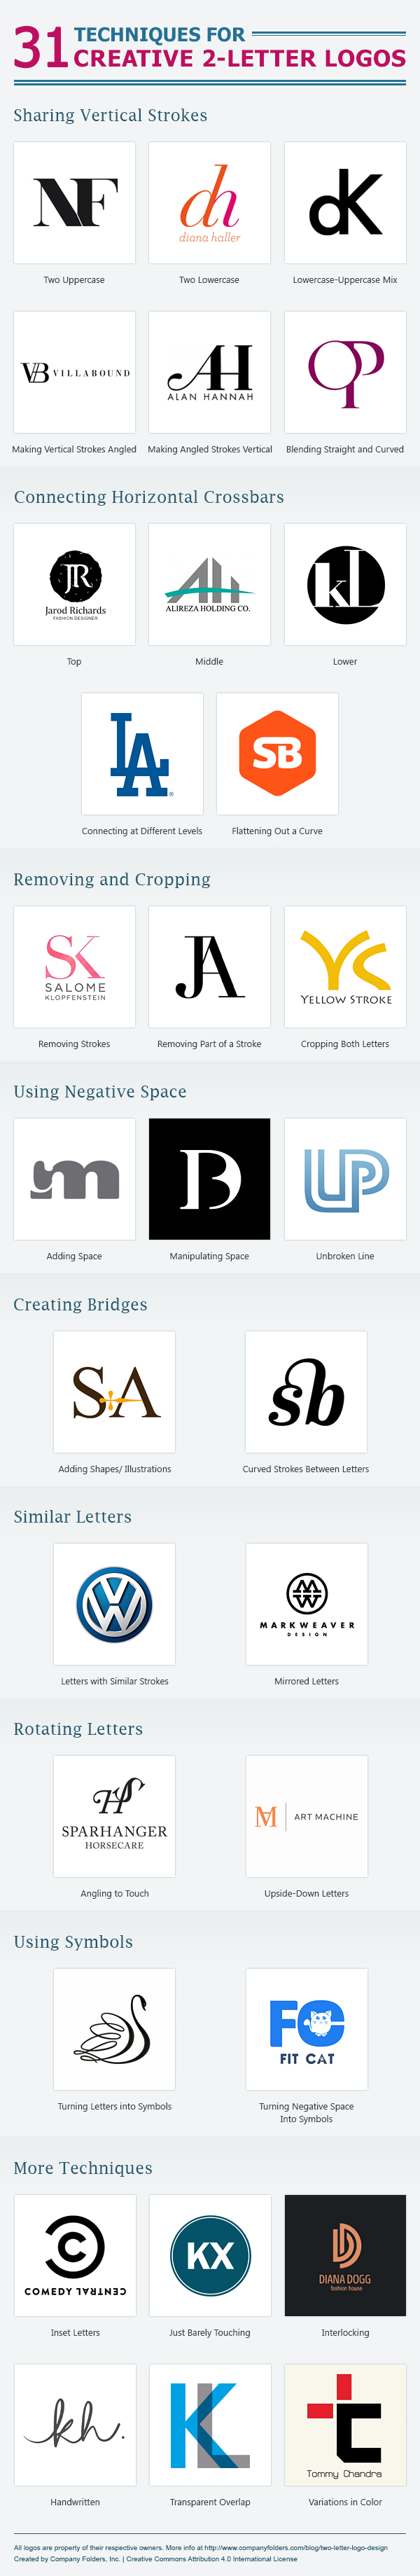 logo design infographic